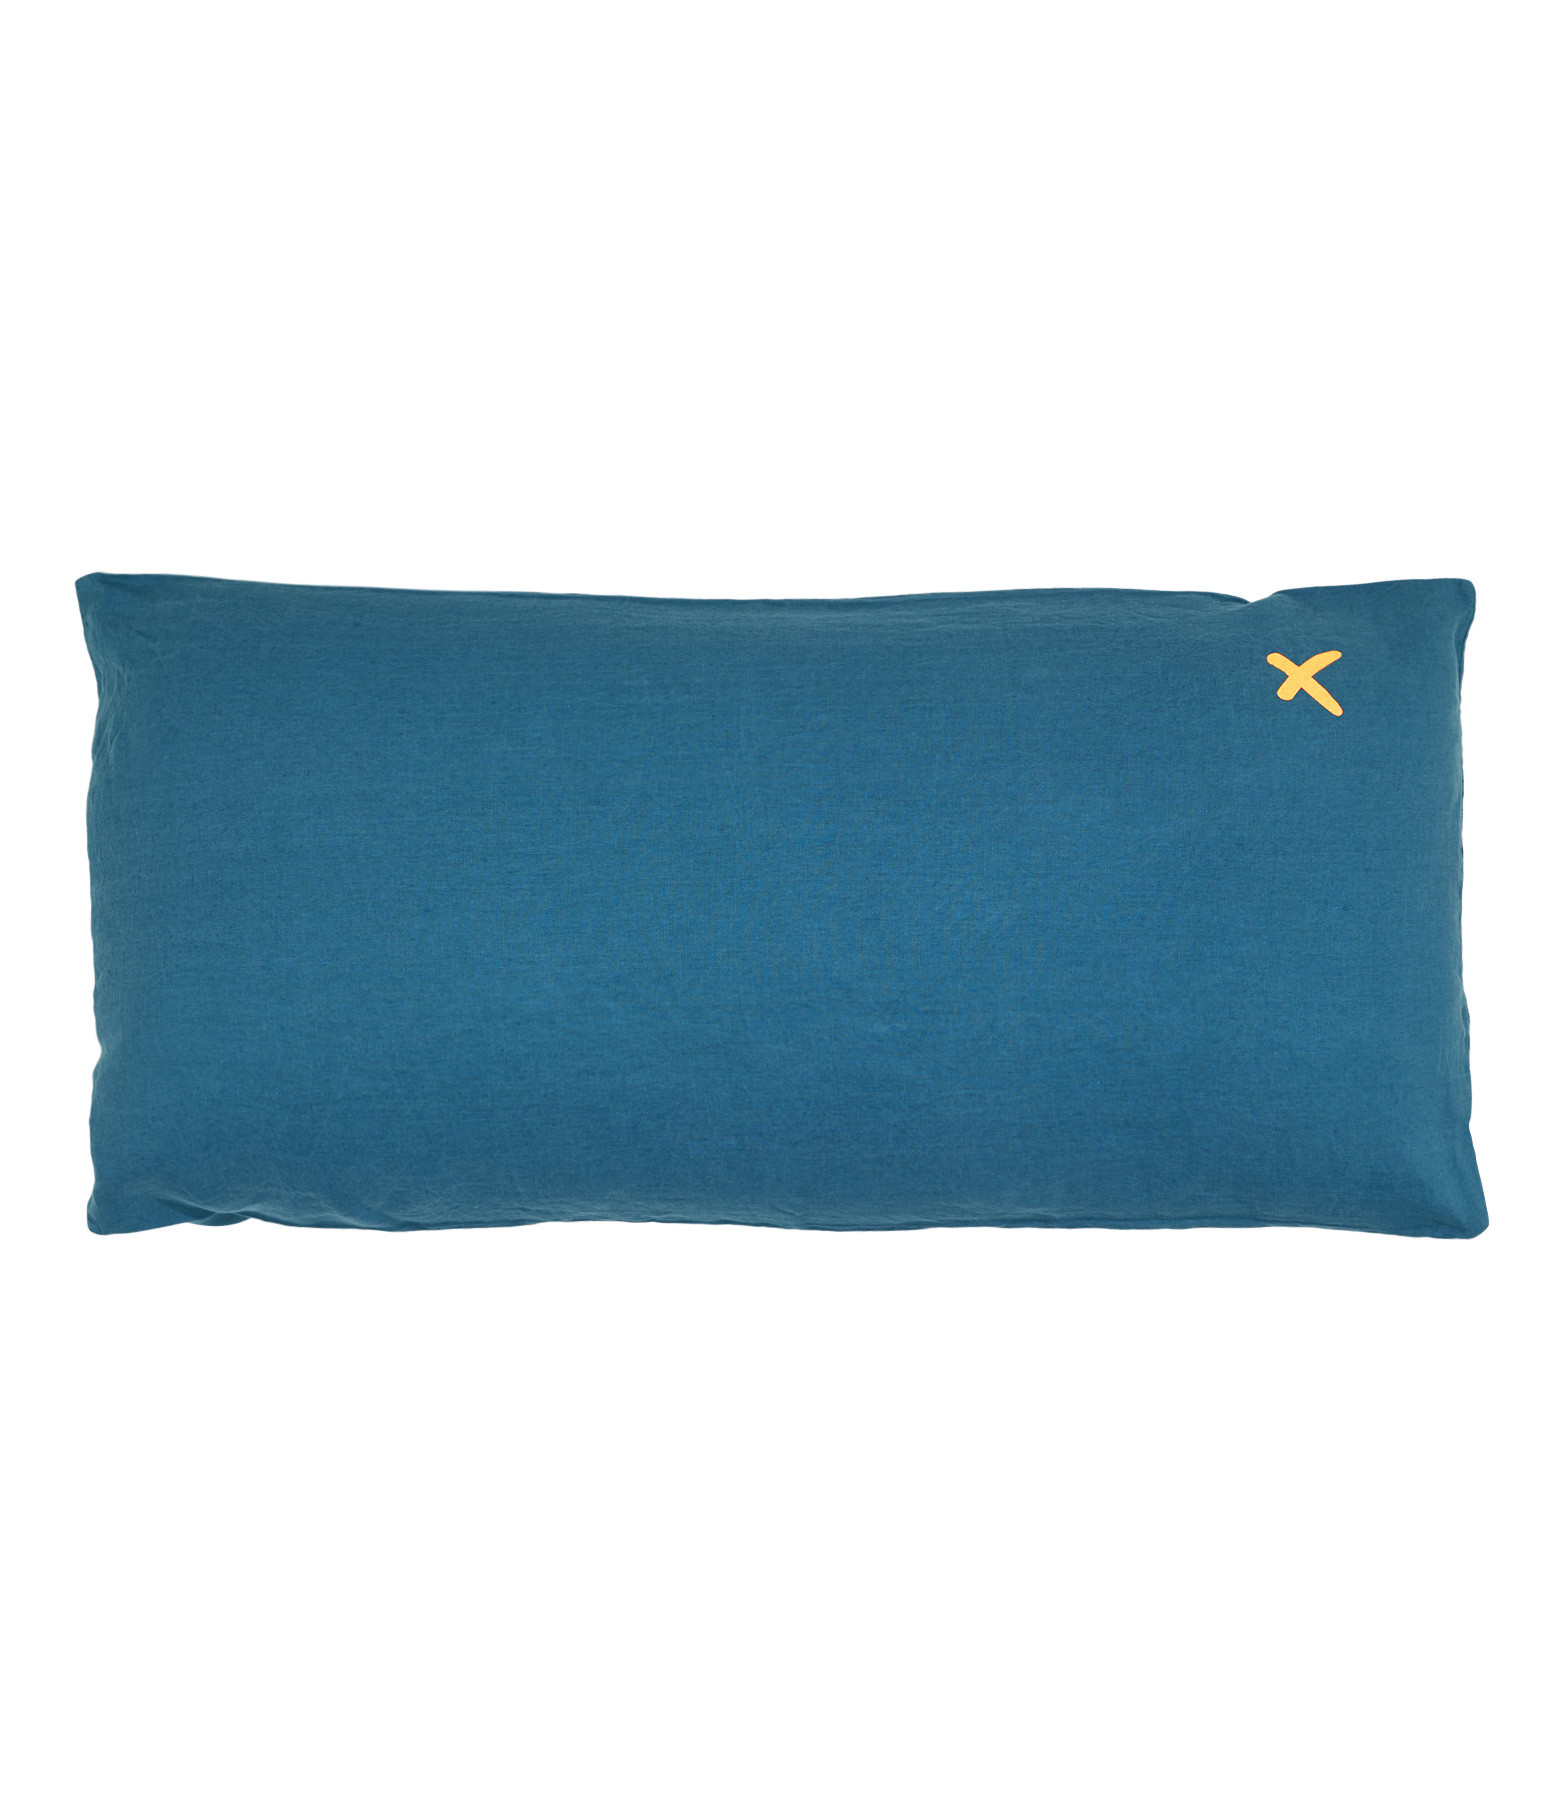 BED AND PHILOSOPHY - Coussin Lovers Lin Piscine Print Croix Doré